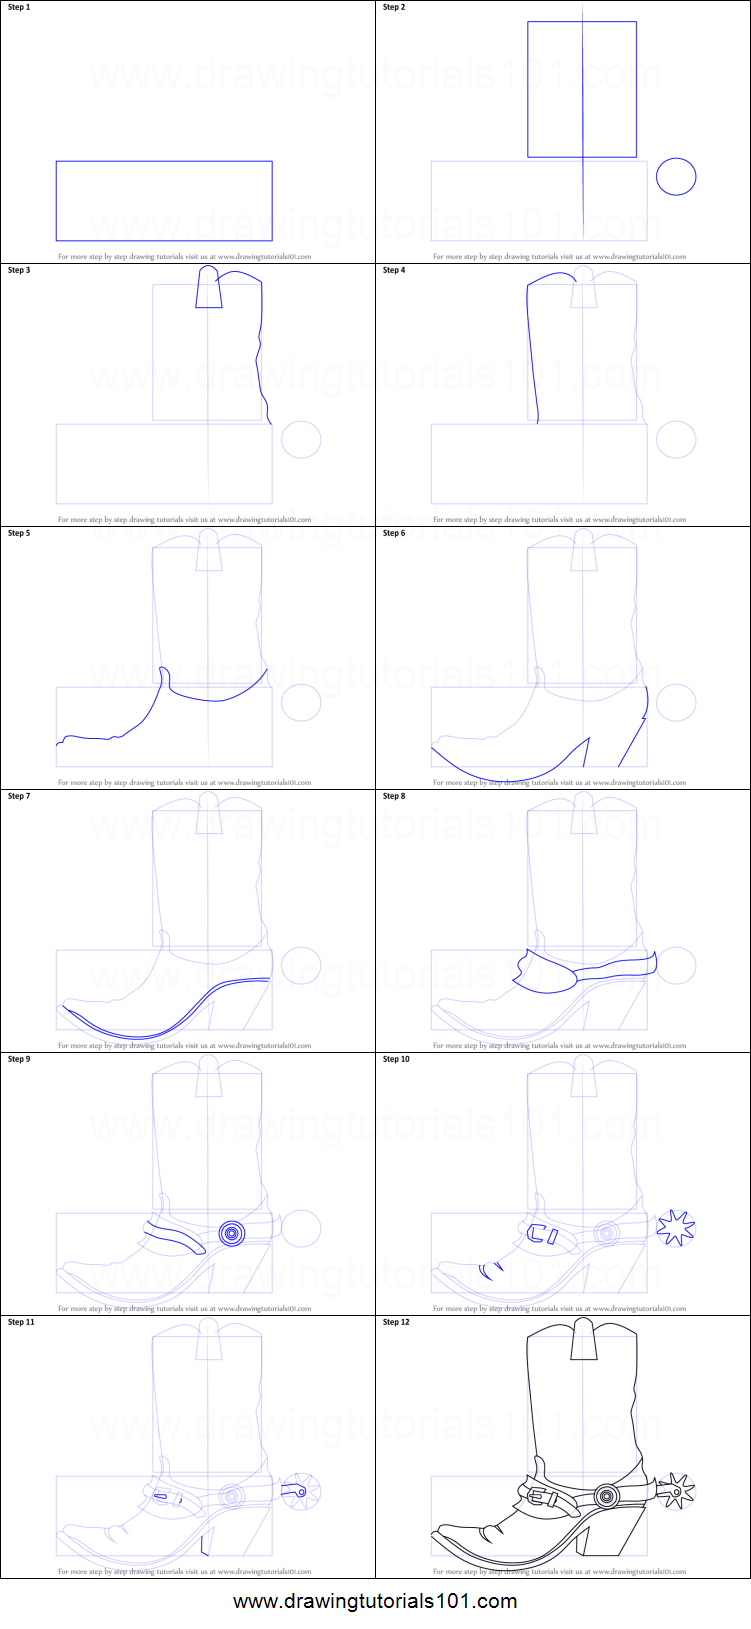 How to Draw Cowboy Boots printable step by step drawing